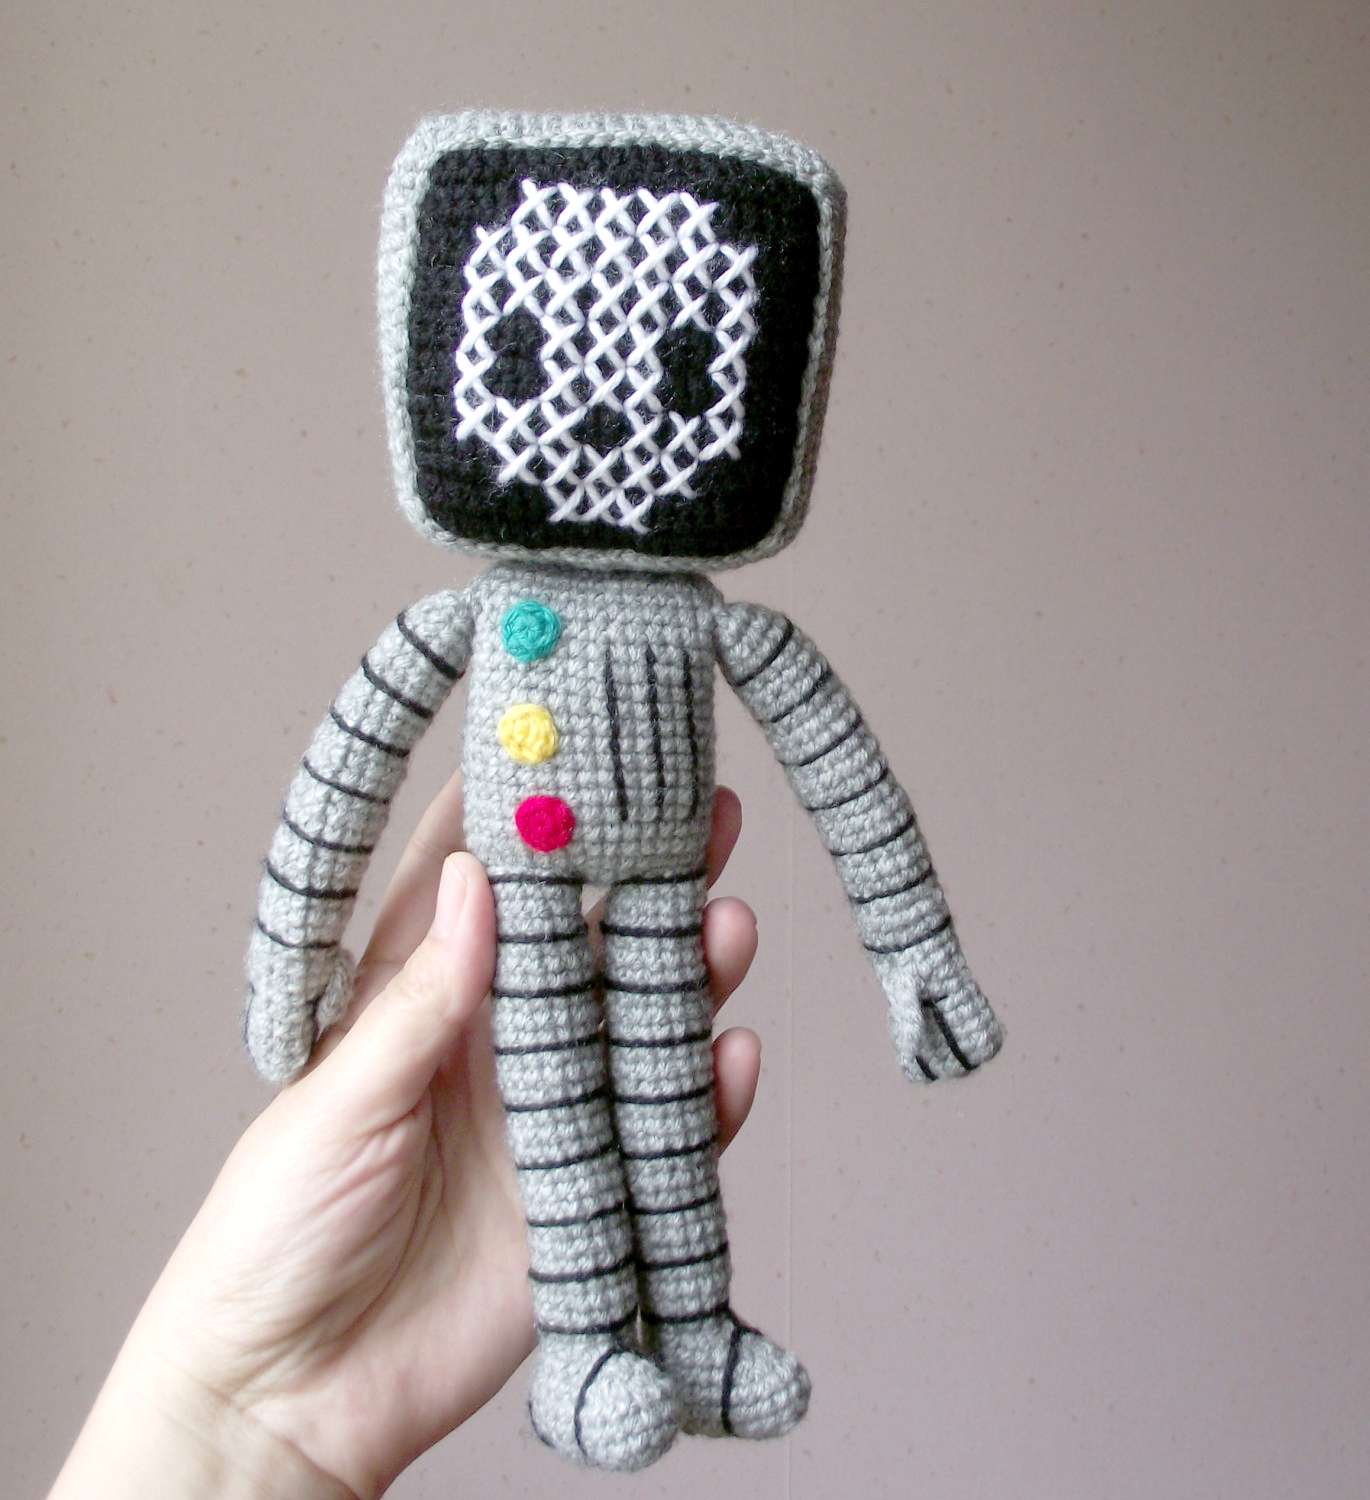 roger the robot amigurumi 01